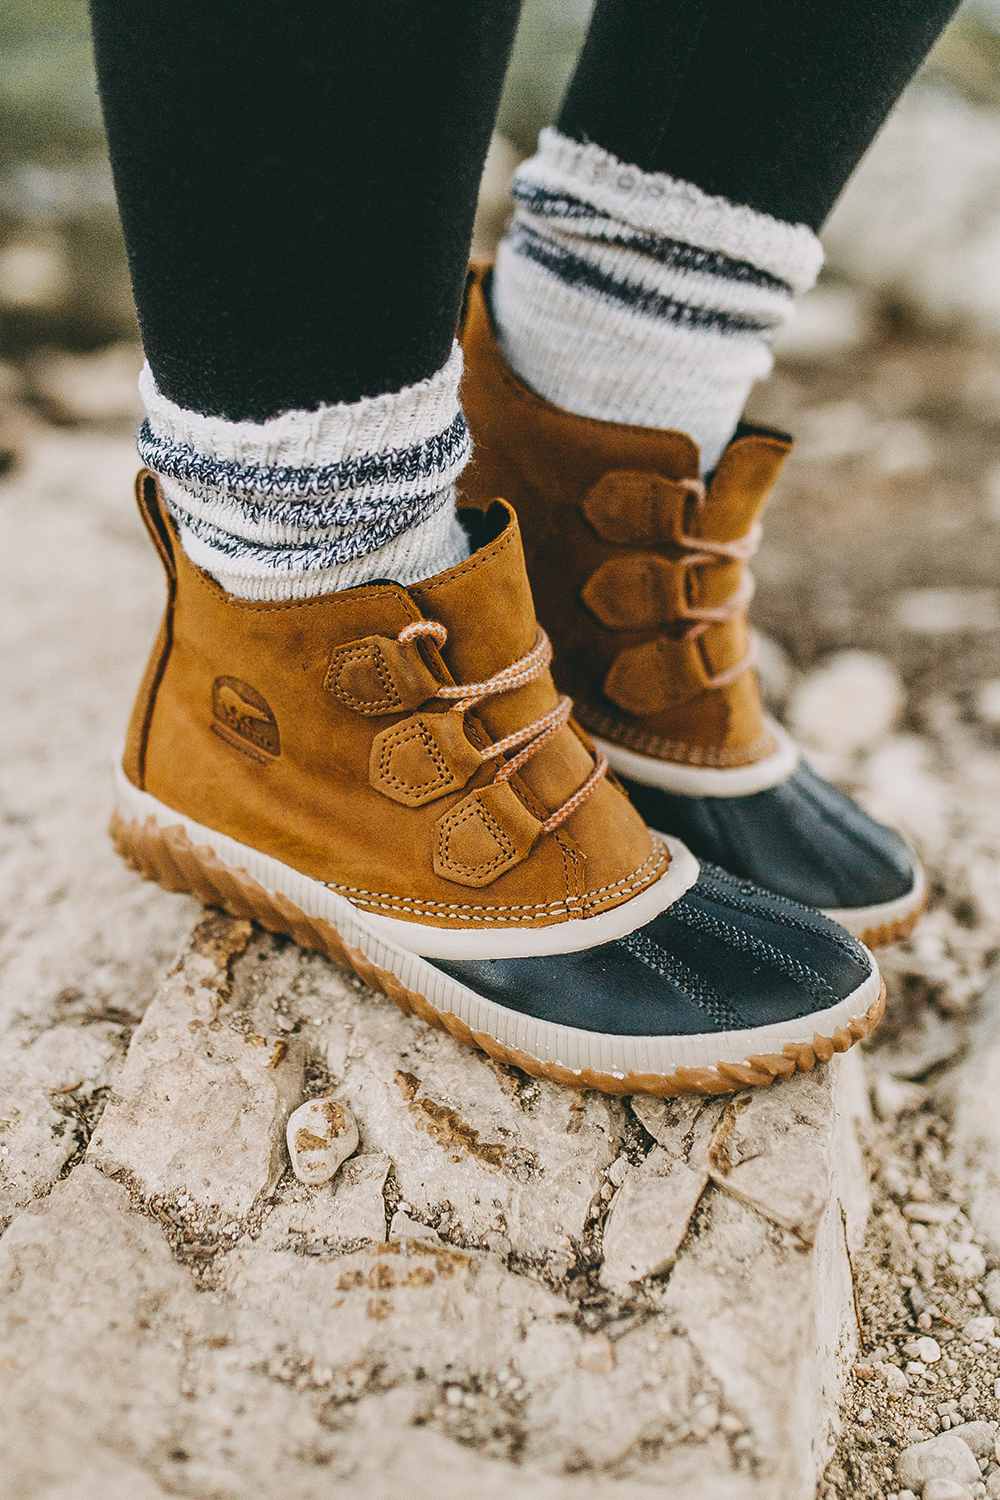 livvyland-blog-olivia-watson-austin-texas-fashion-lifestyle-blogger-backcountry-patagonia-better-sweater-jacket-sorel-hiking-boots-sorel-boots-hiking-outfit-9